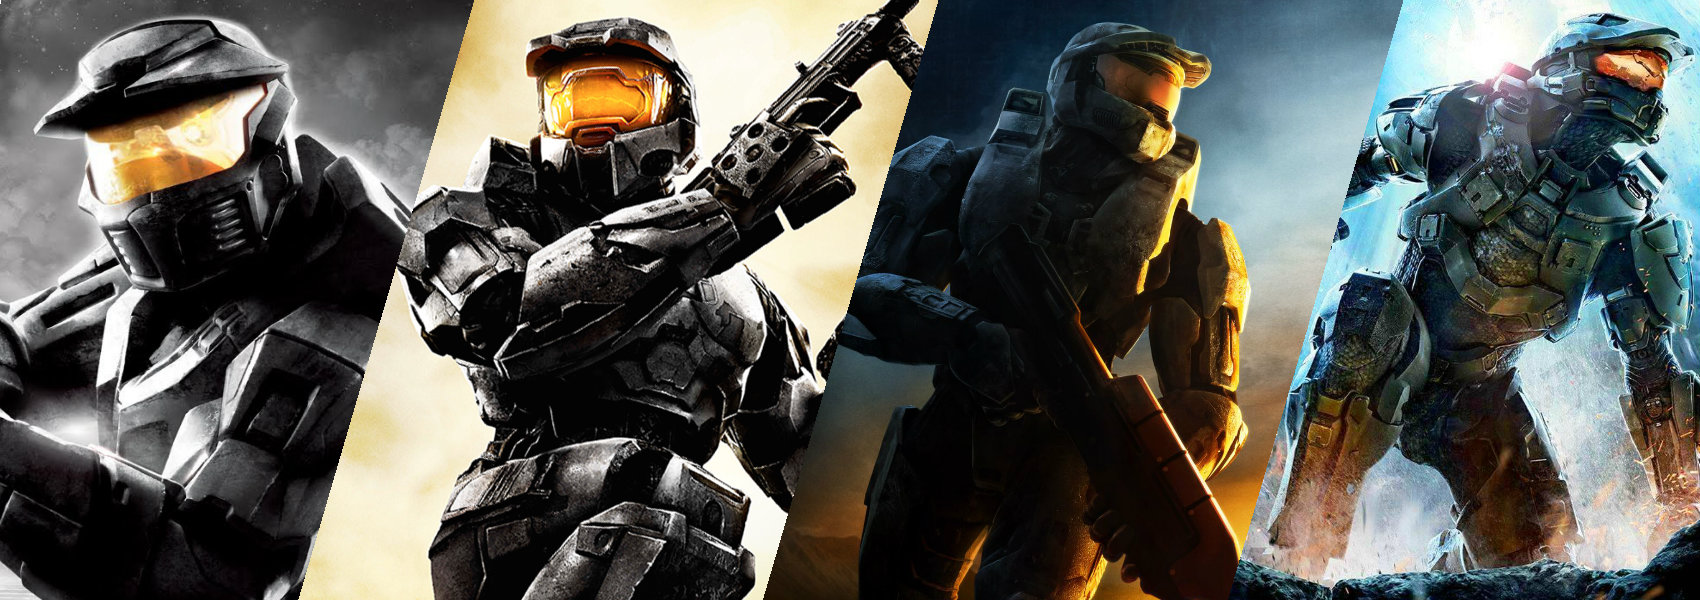 MASTER CHIEF COLLECTION - LOCATION: Reach, Alpha Halo, Earth, Delta Halo, The Ark, RequiemSTART: July 24th, 2552END: July 25th, 2557